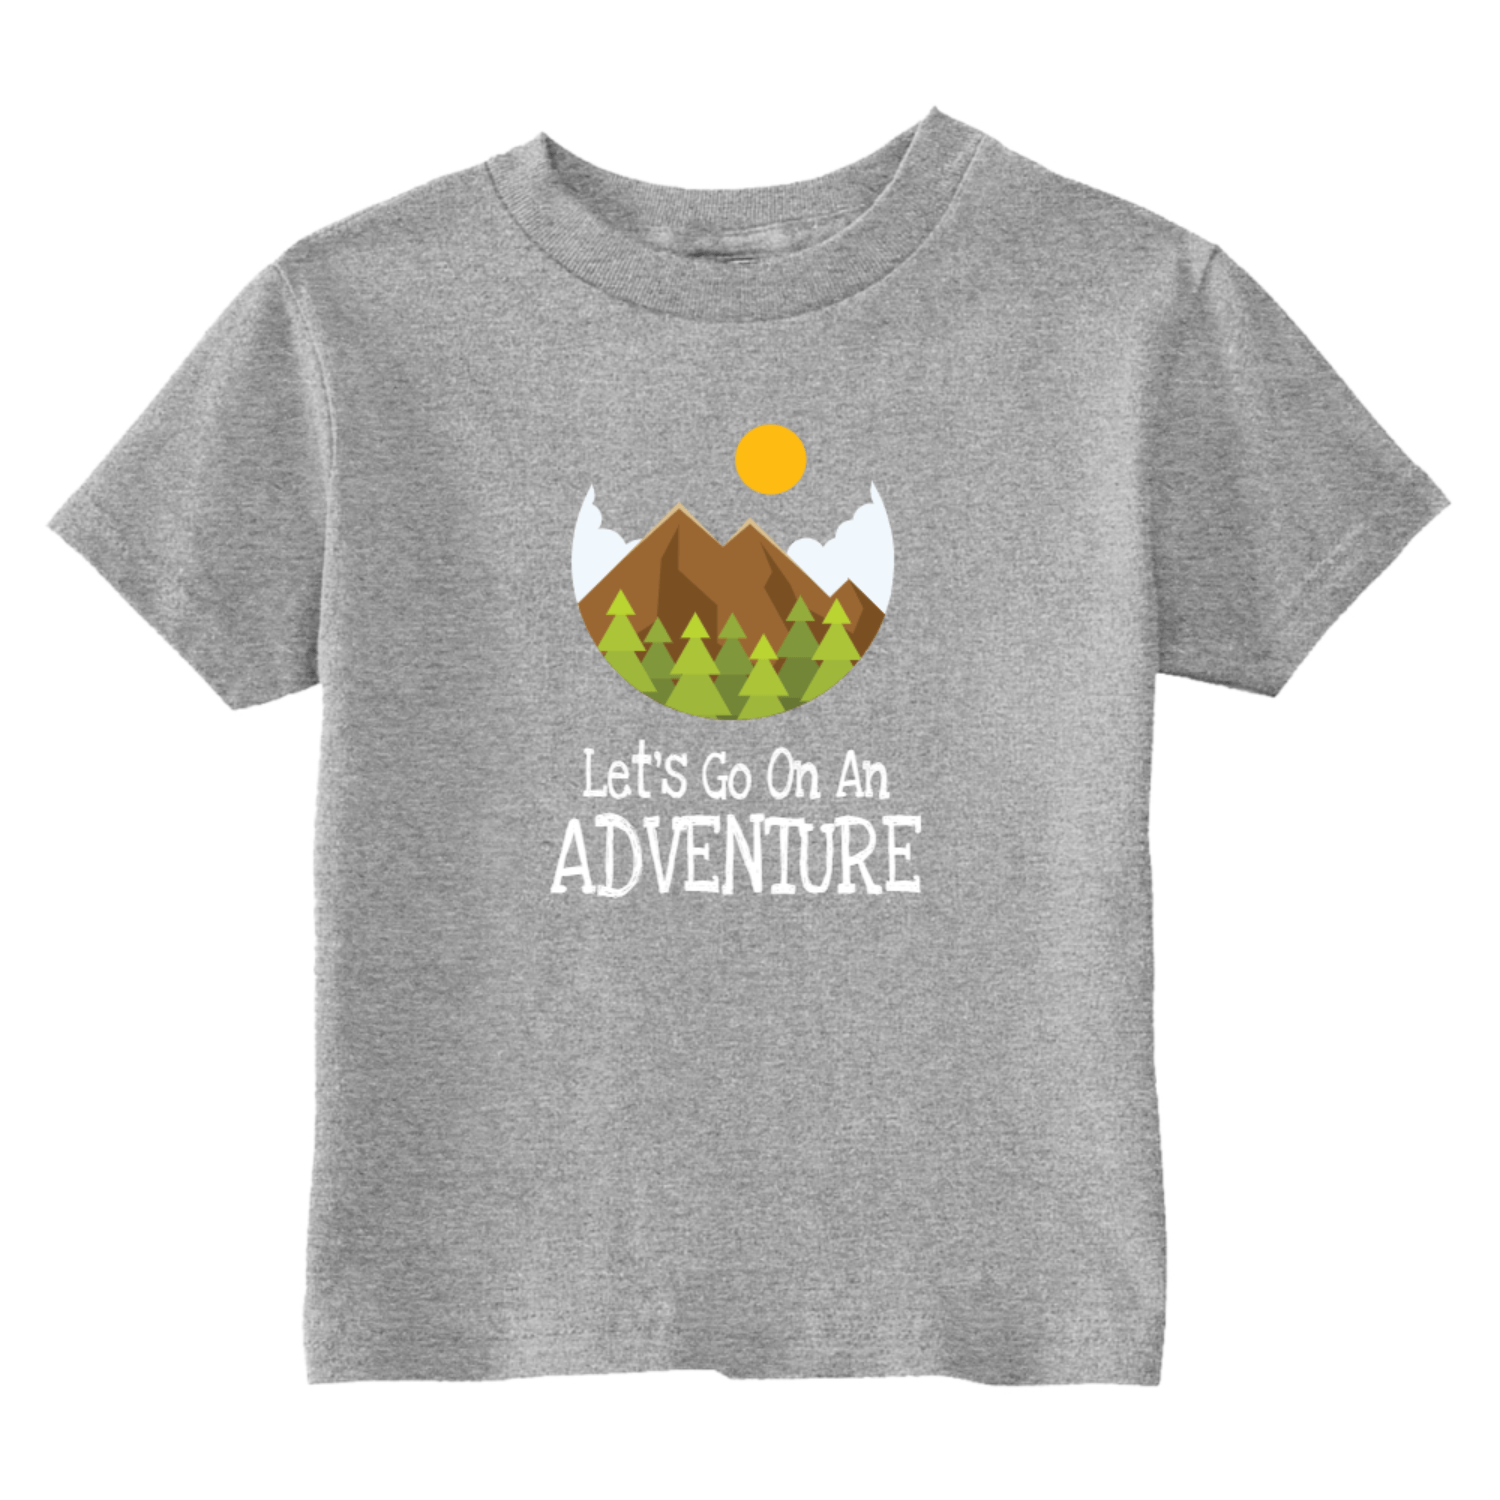 Let's Go On An Adventure Hiking Toddler T-Shirt Gray